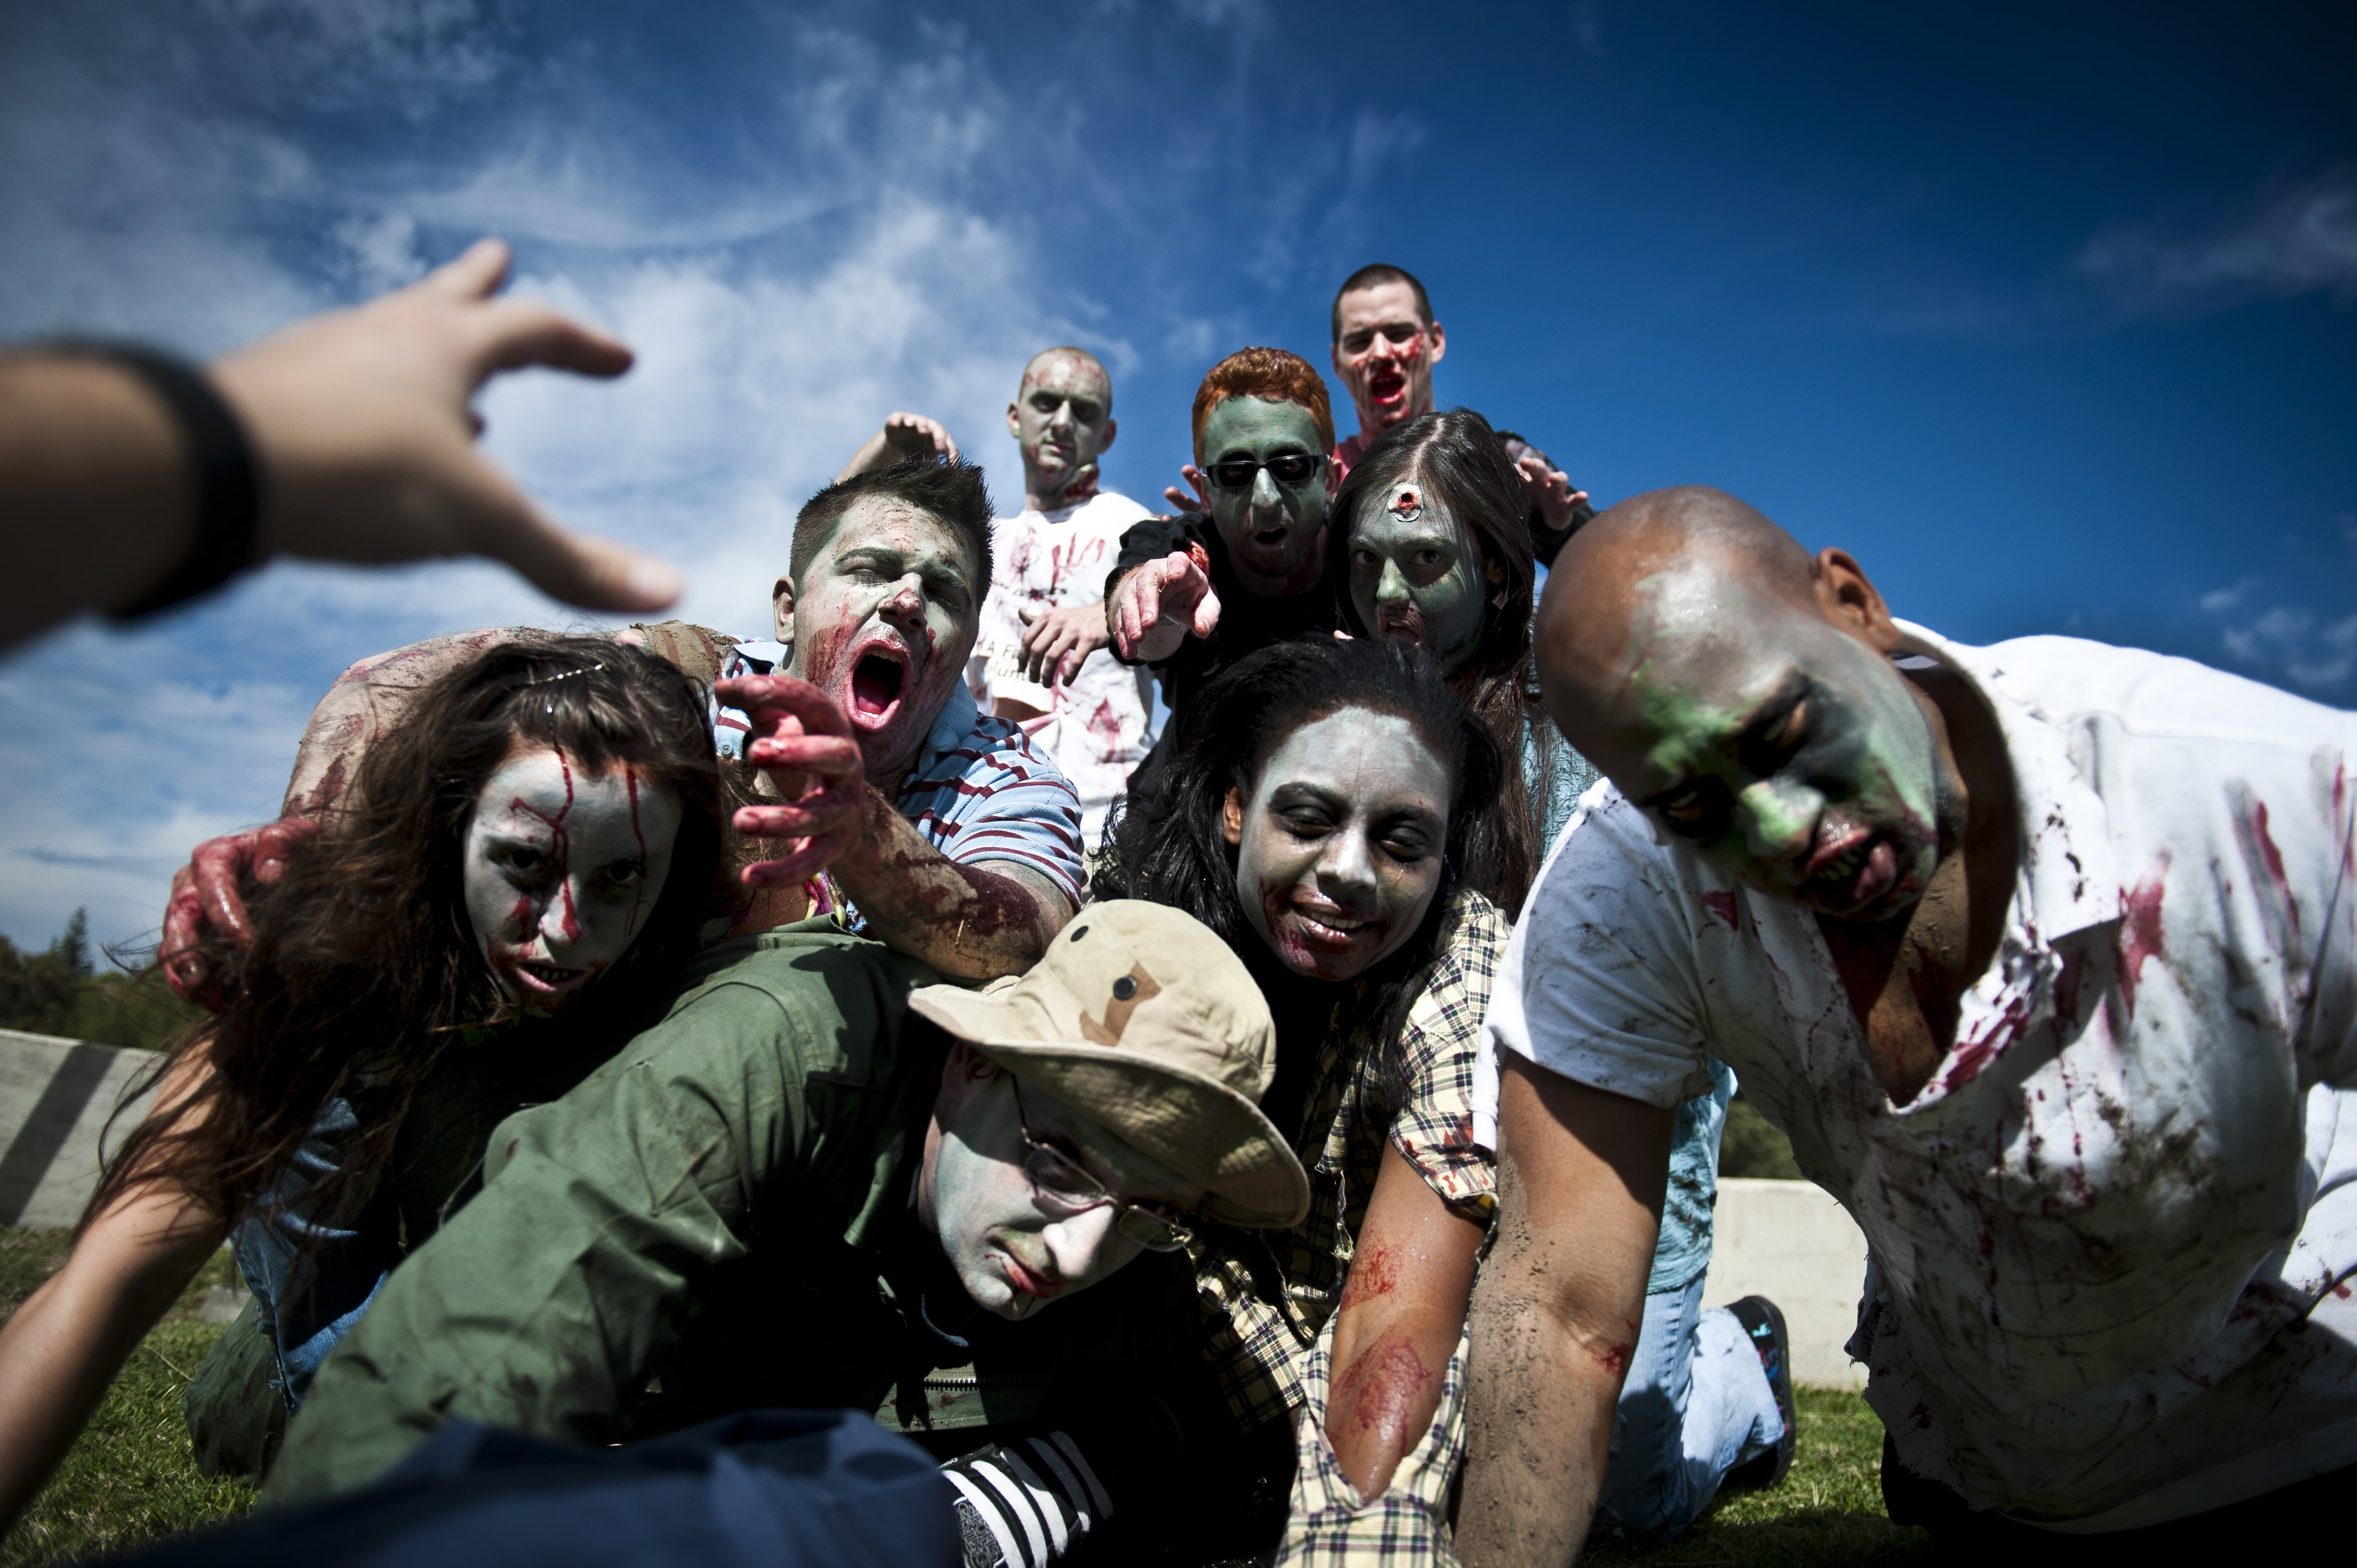 The Poole Zombie Fest is coming for you